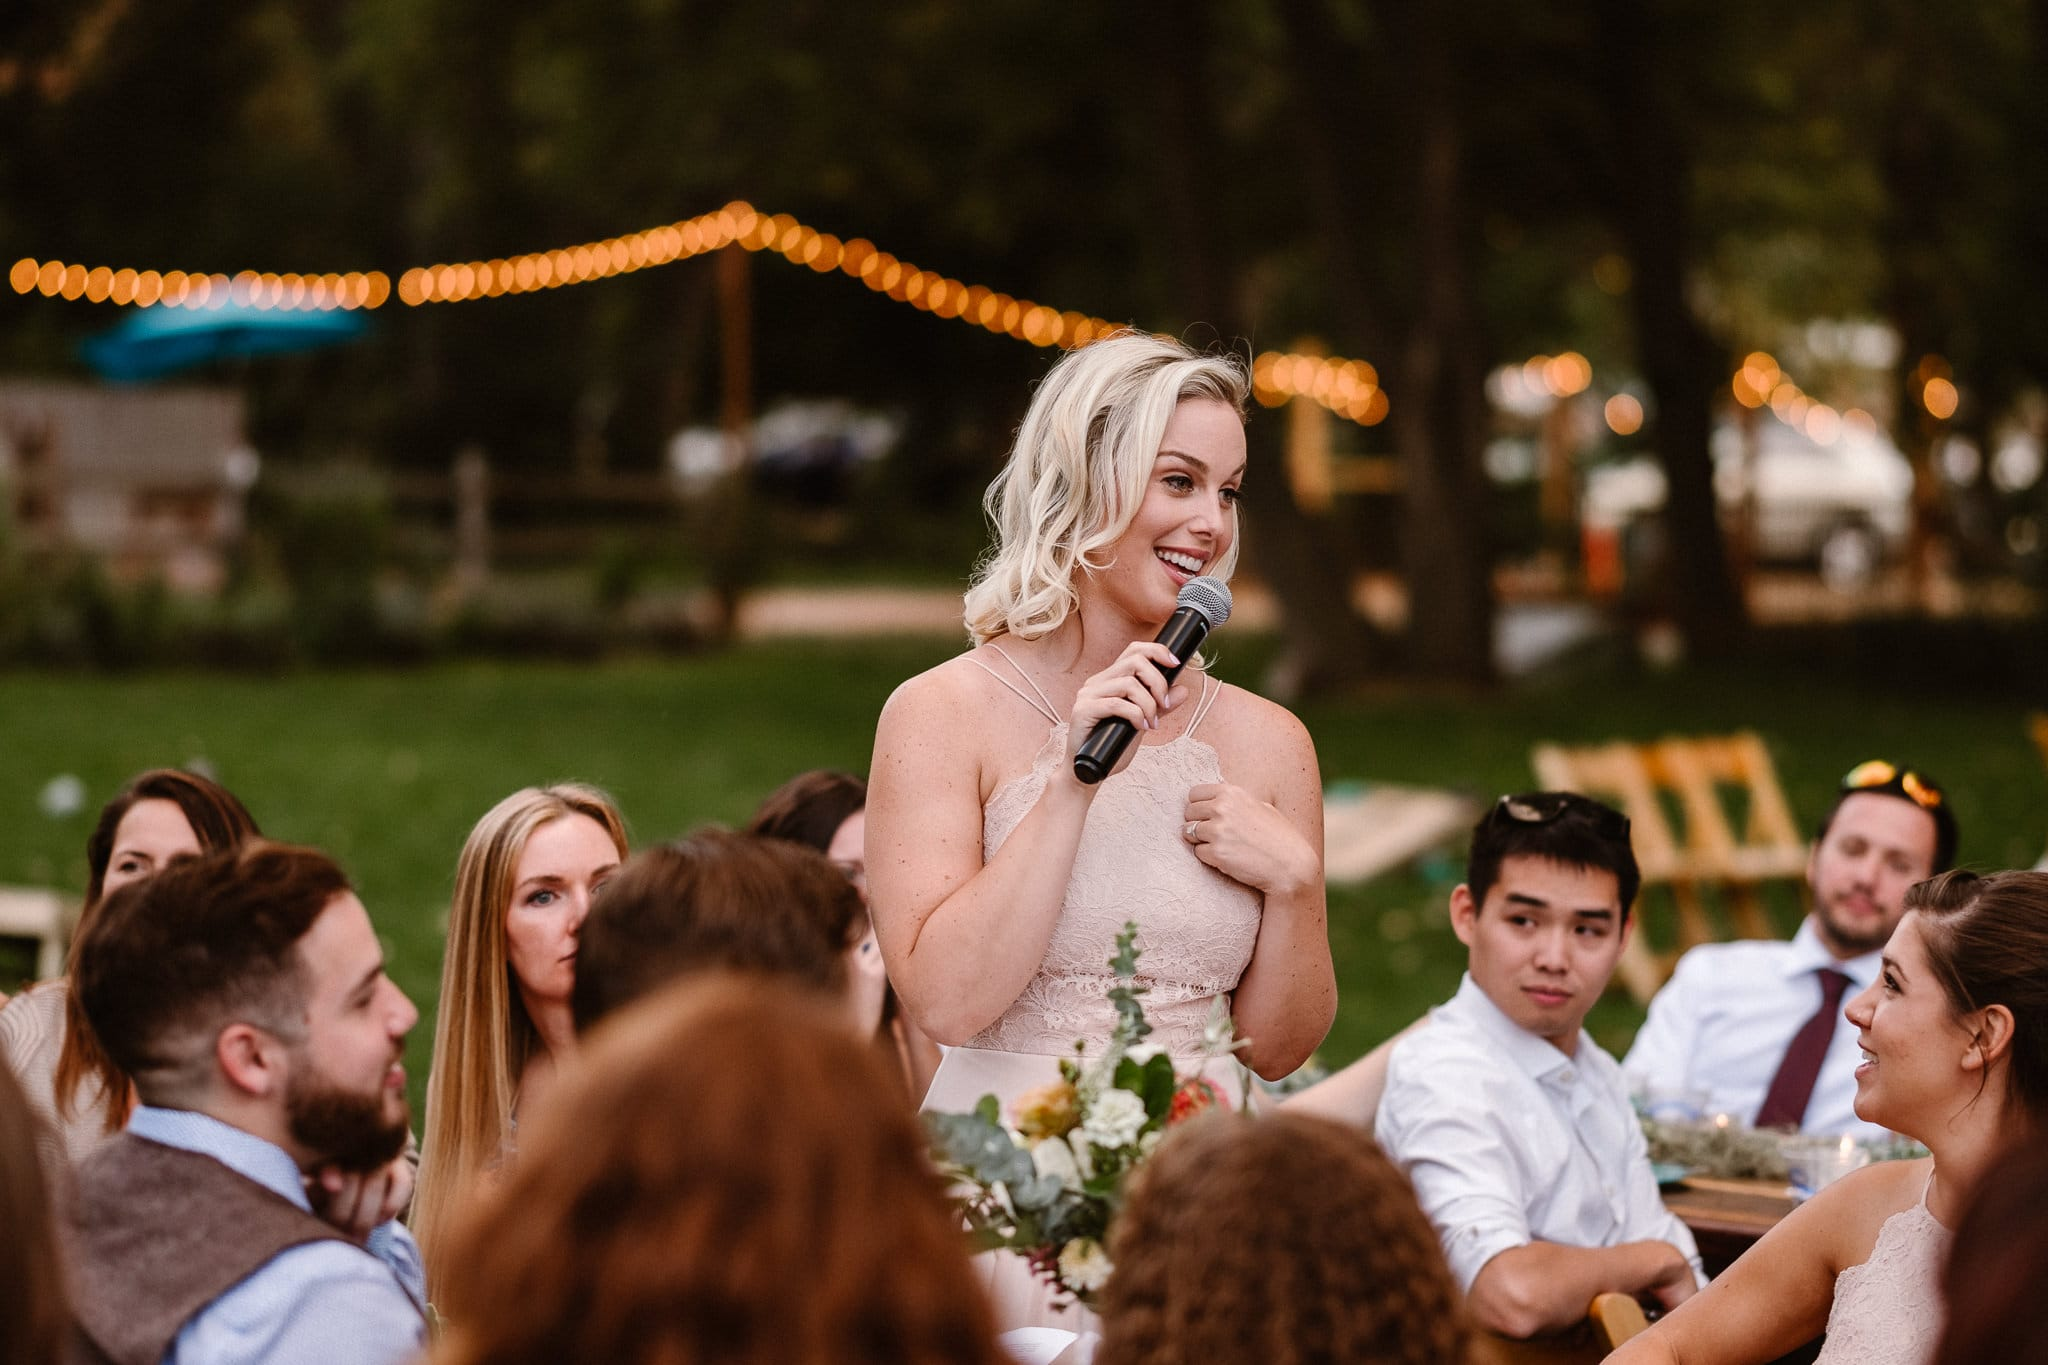 Lyons Farmette wedding photographer, Colorado intimate wedding photographer, wedding toasts, maid of honor toast